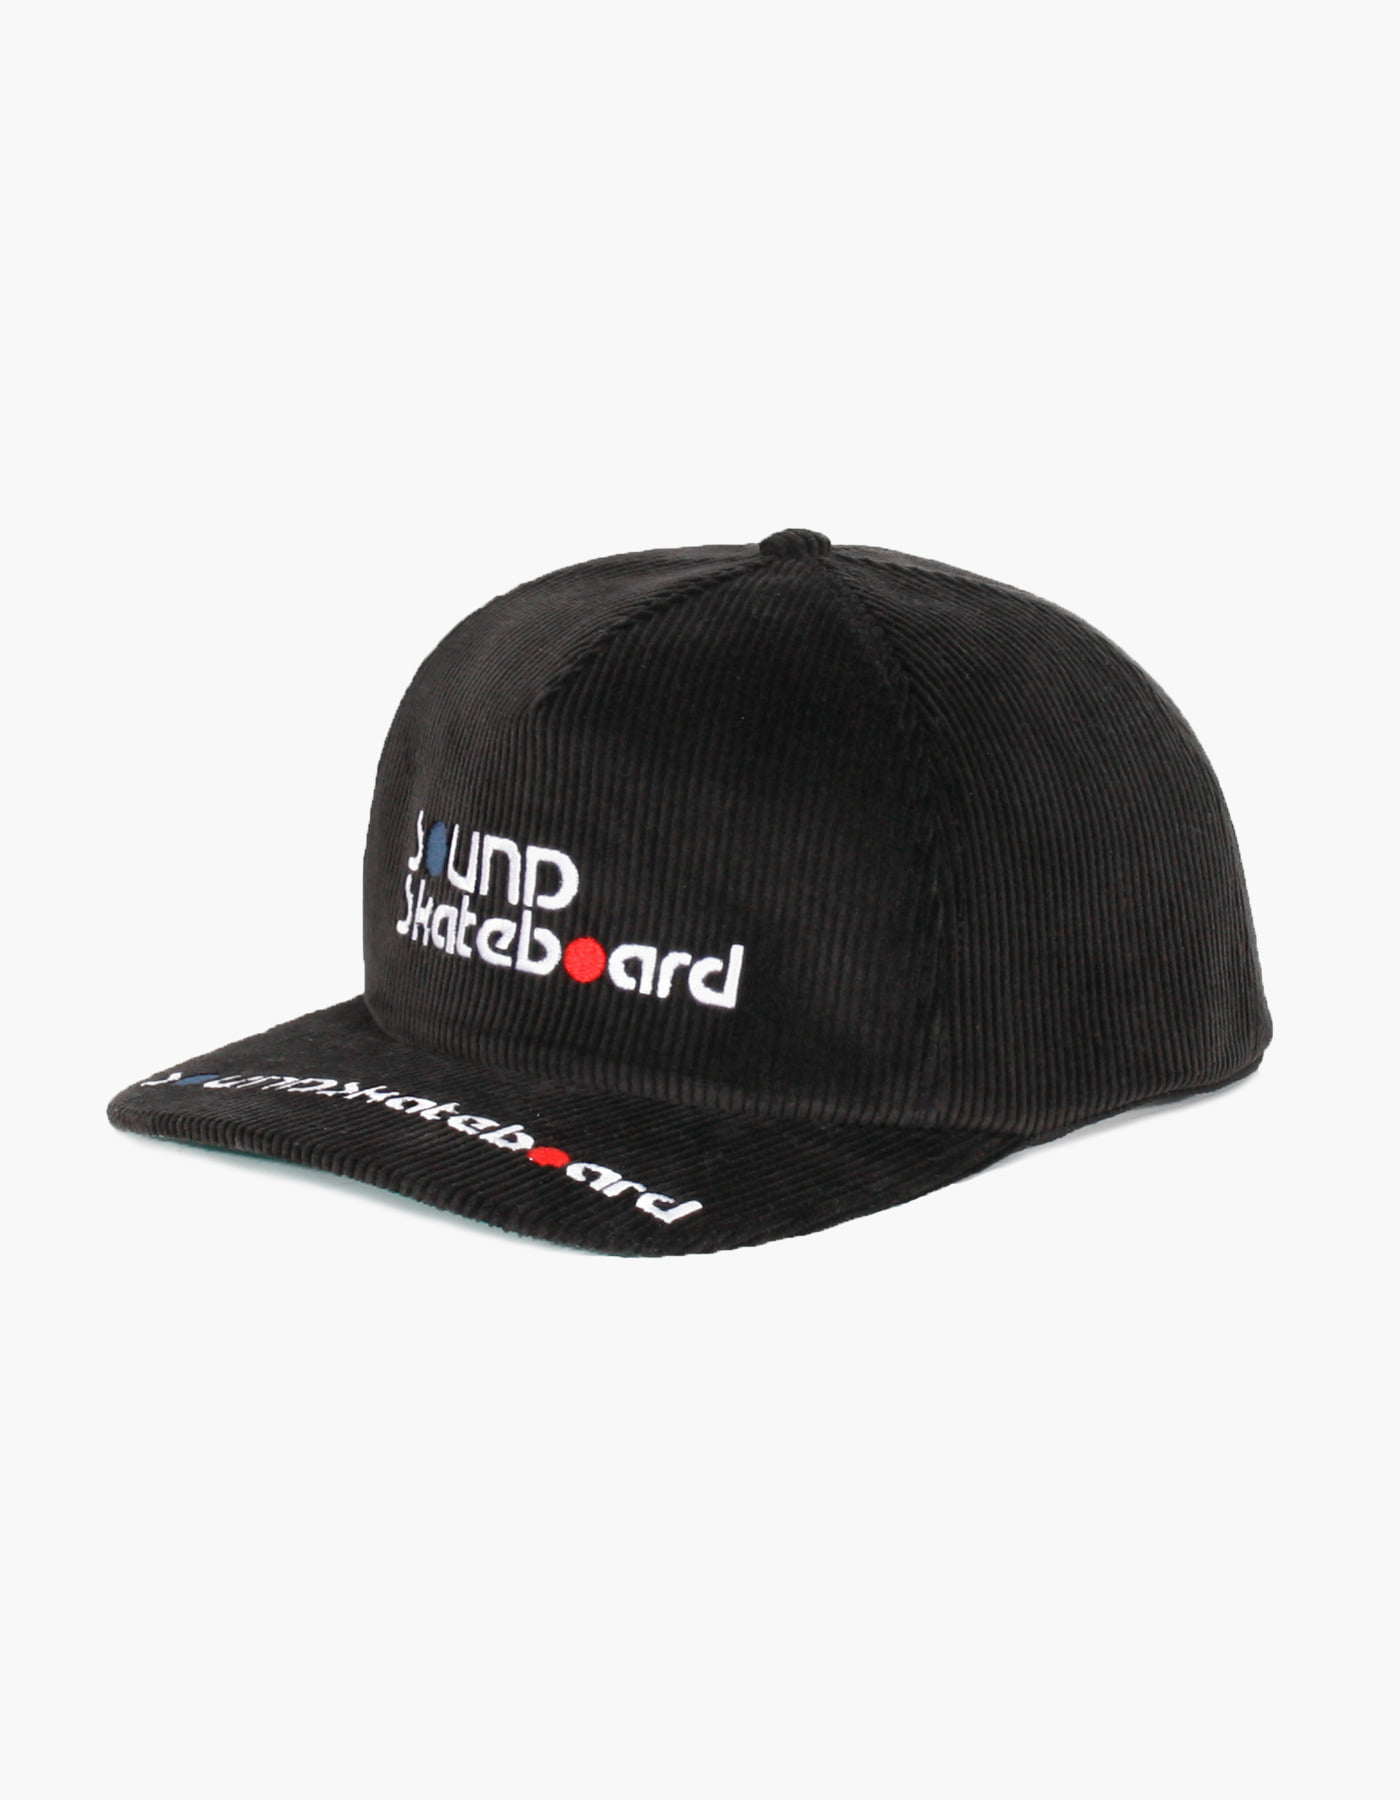 SOUNDSK8 CORDUROY 5 PANEL CAP / BLACK